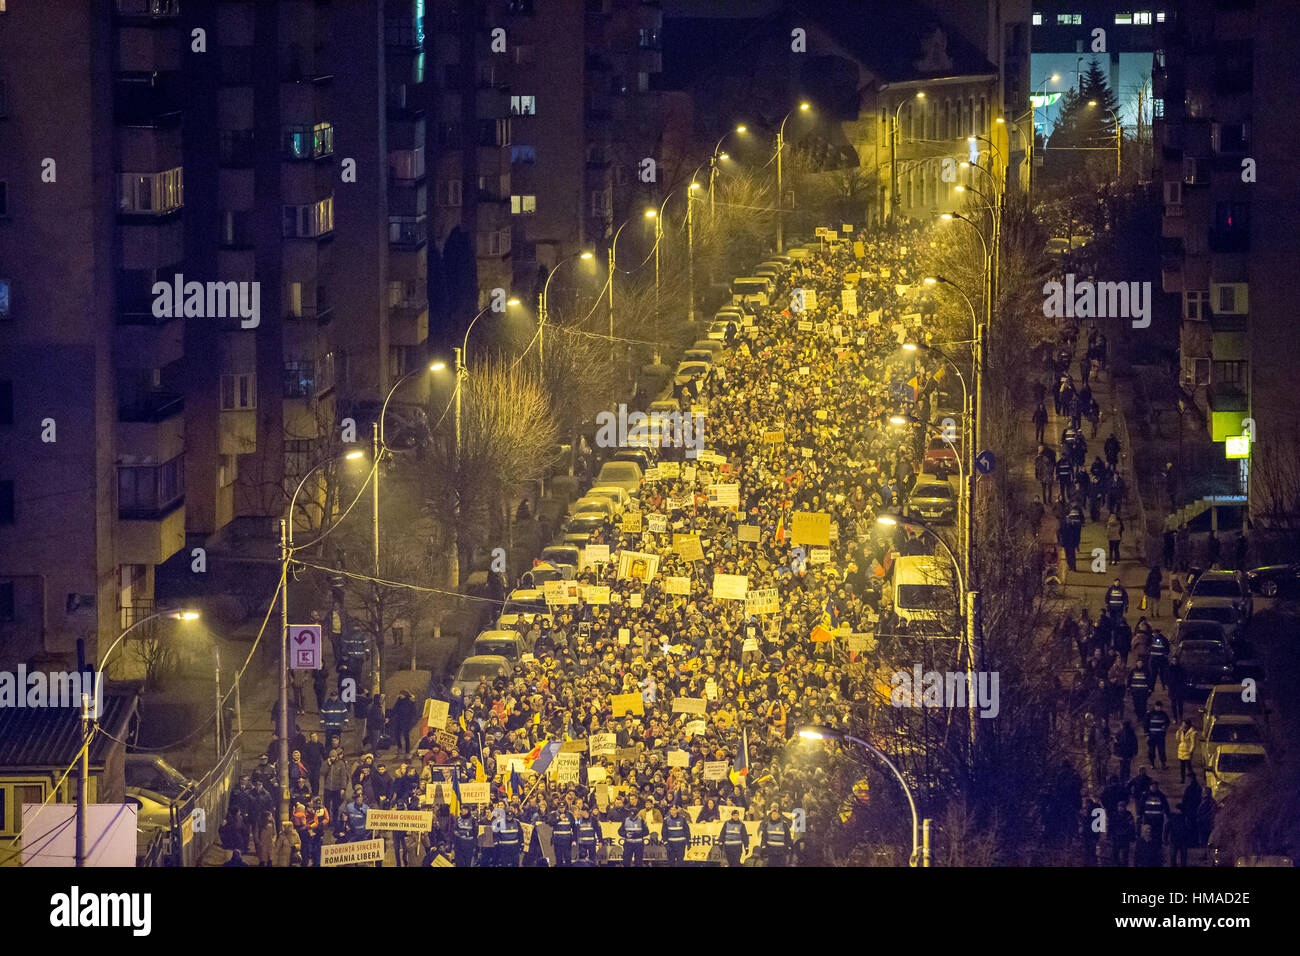 Cluj-Napoca, Romania. 2nd February, 2017. Tens of thousands Romanians marched the streets of Cluj-Napoca to protest - Stock Image